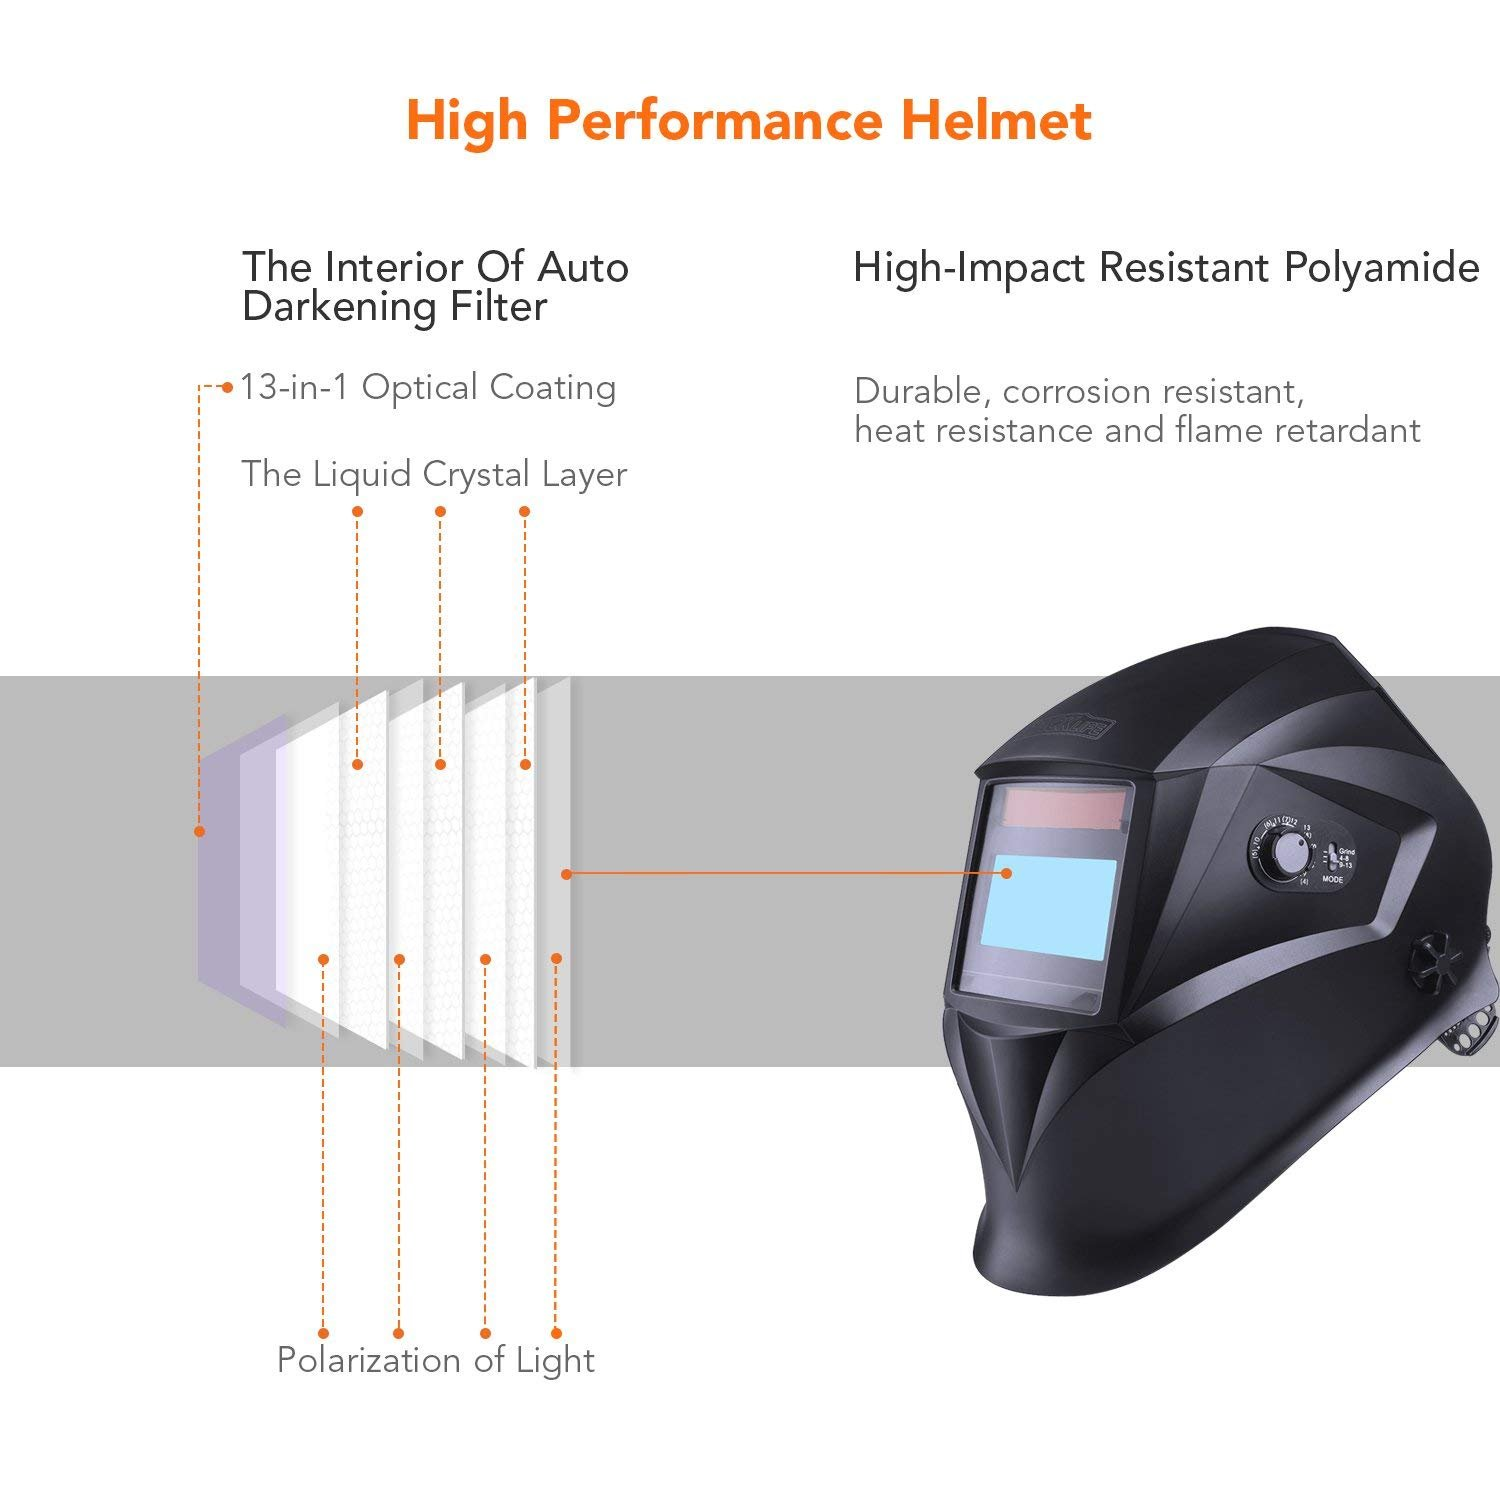 Welding Helmet With Top Optical Class 1 Full Shade Range 3 4 Diagram Of Tools 8 9 13 Uv Ir Protection Din 16 6pcs Replacement Lenses Protecting Bag